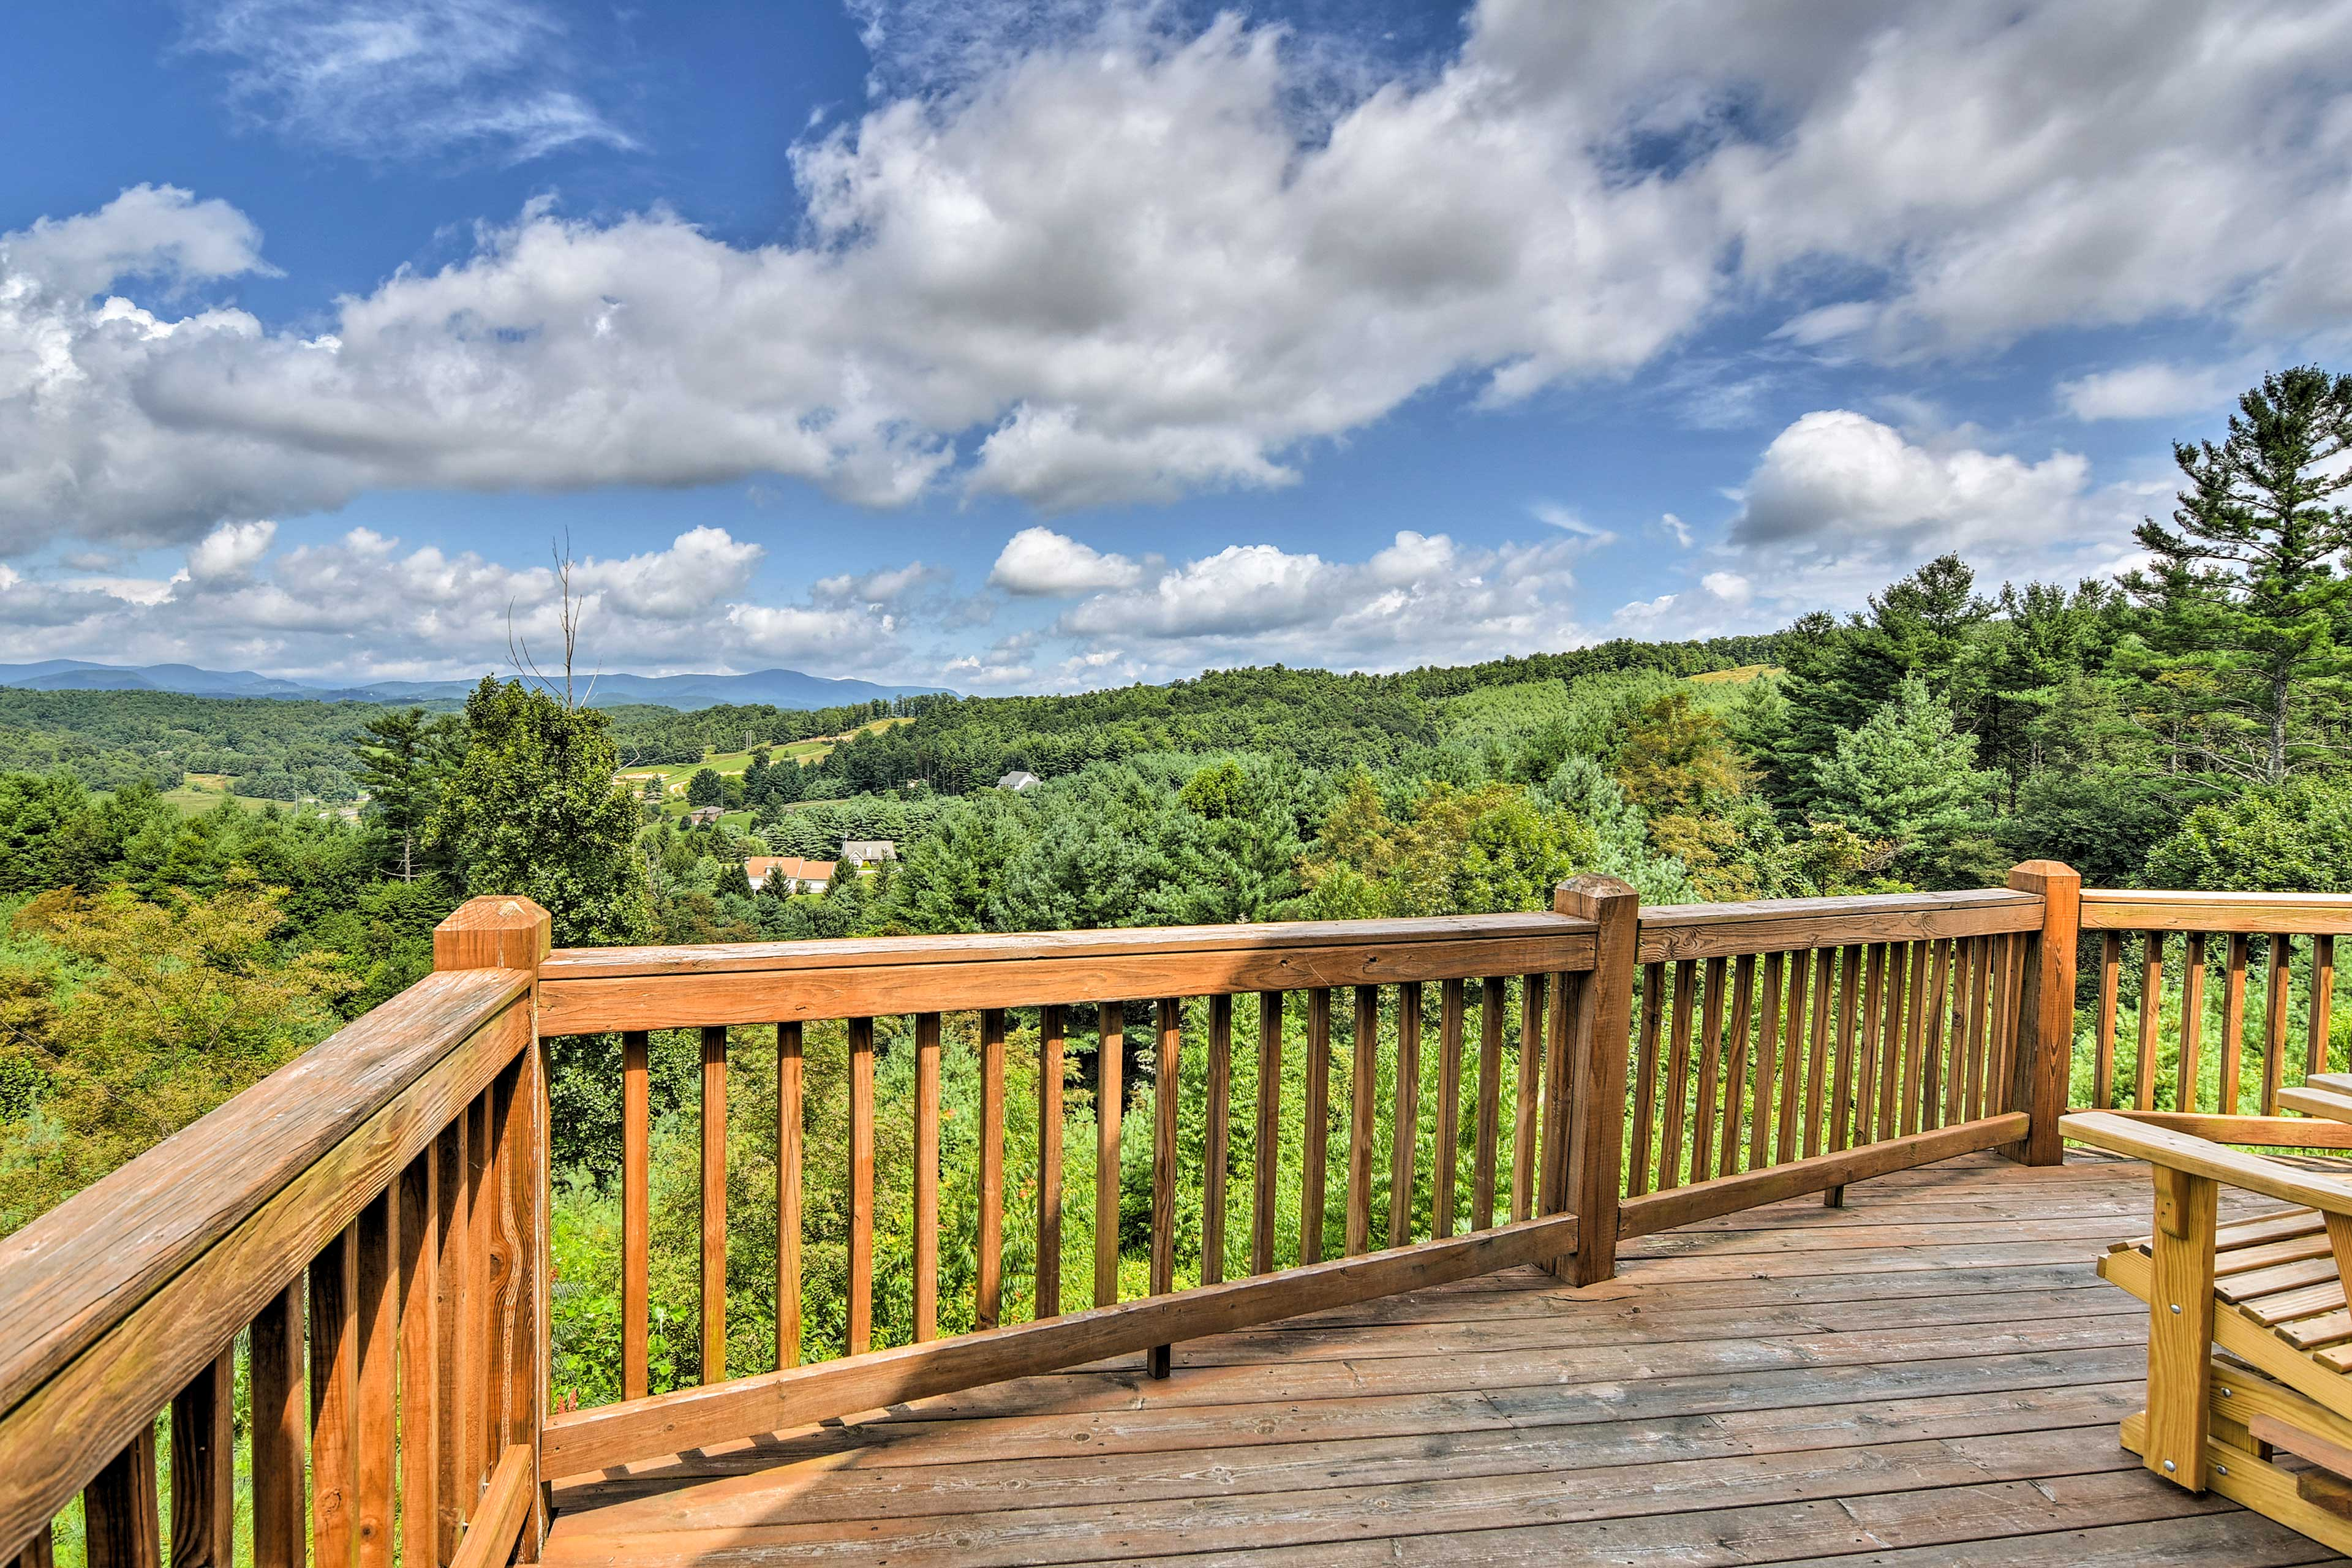 You'll have spectacular views no matter where you are on the deck!